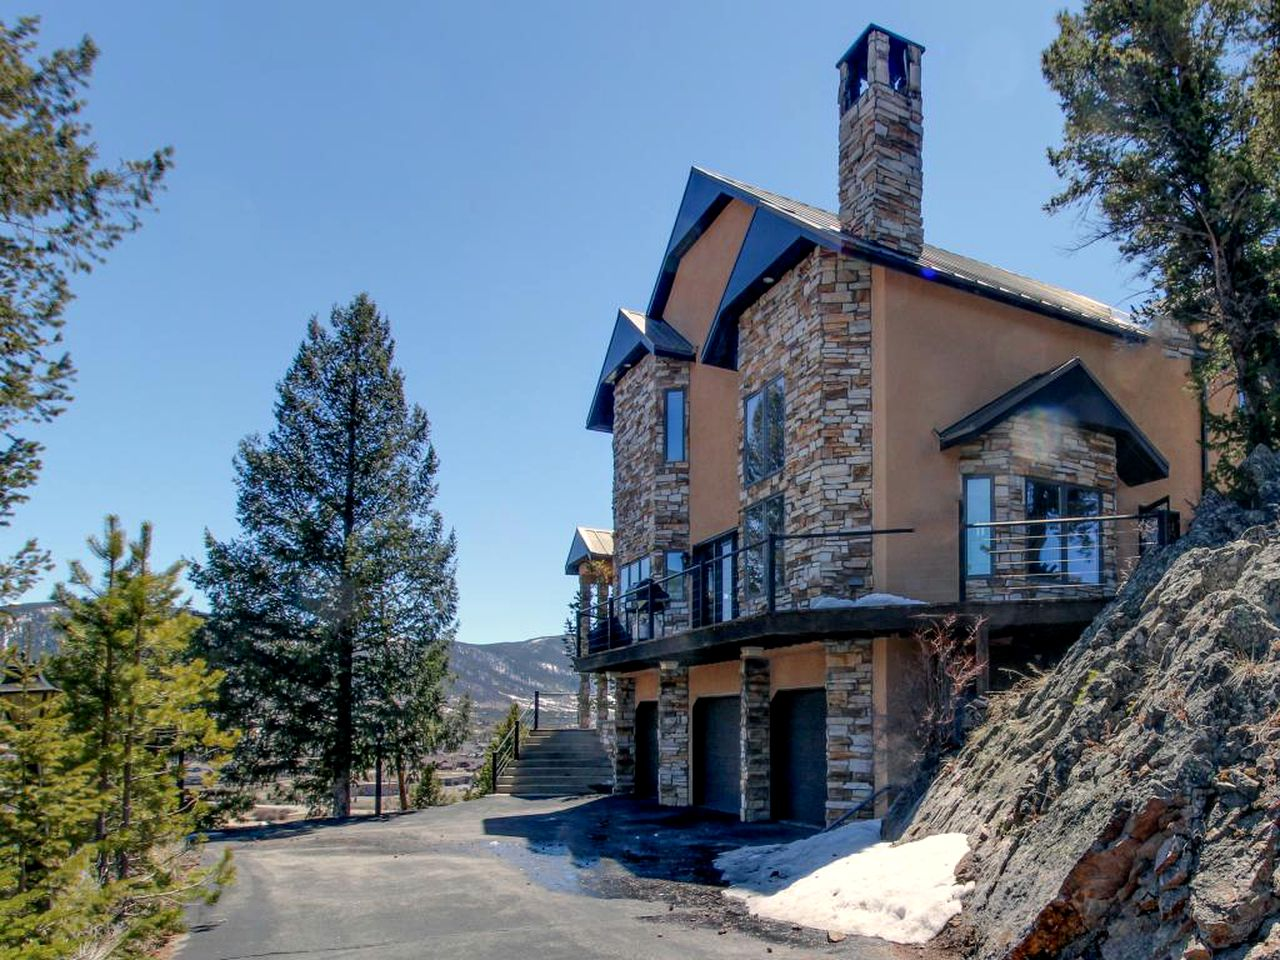 Villas (Dillon, Colorado, United States)